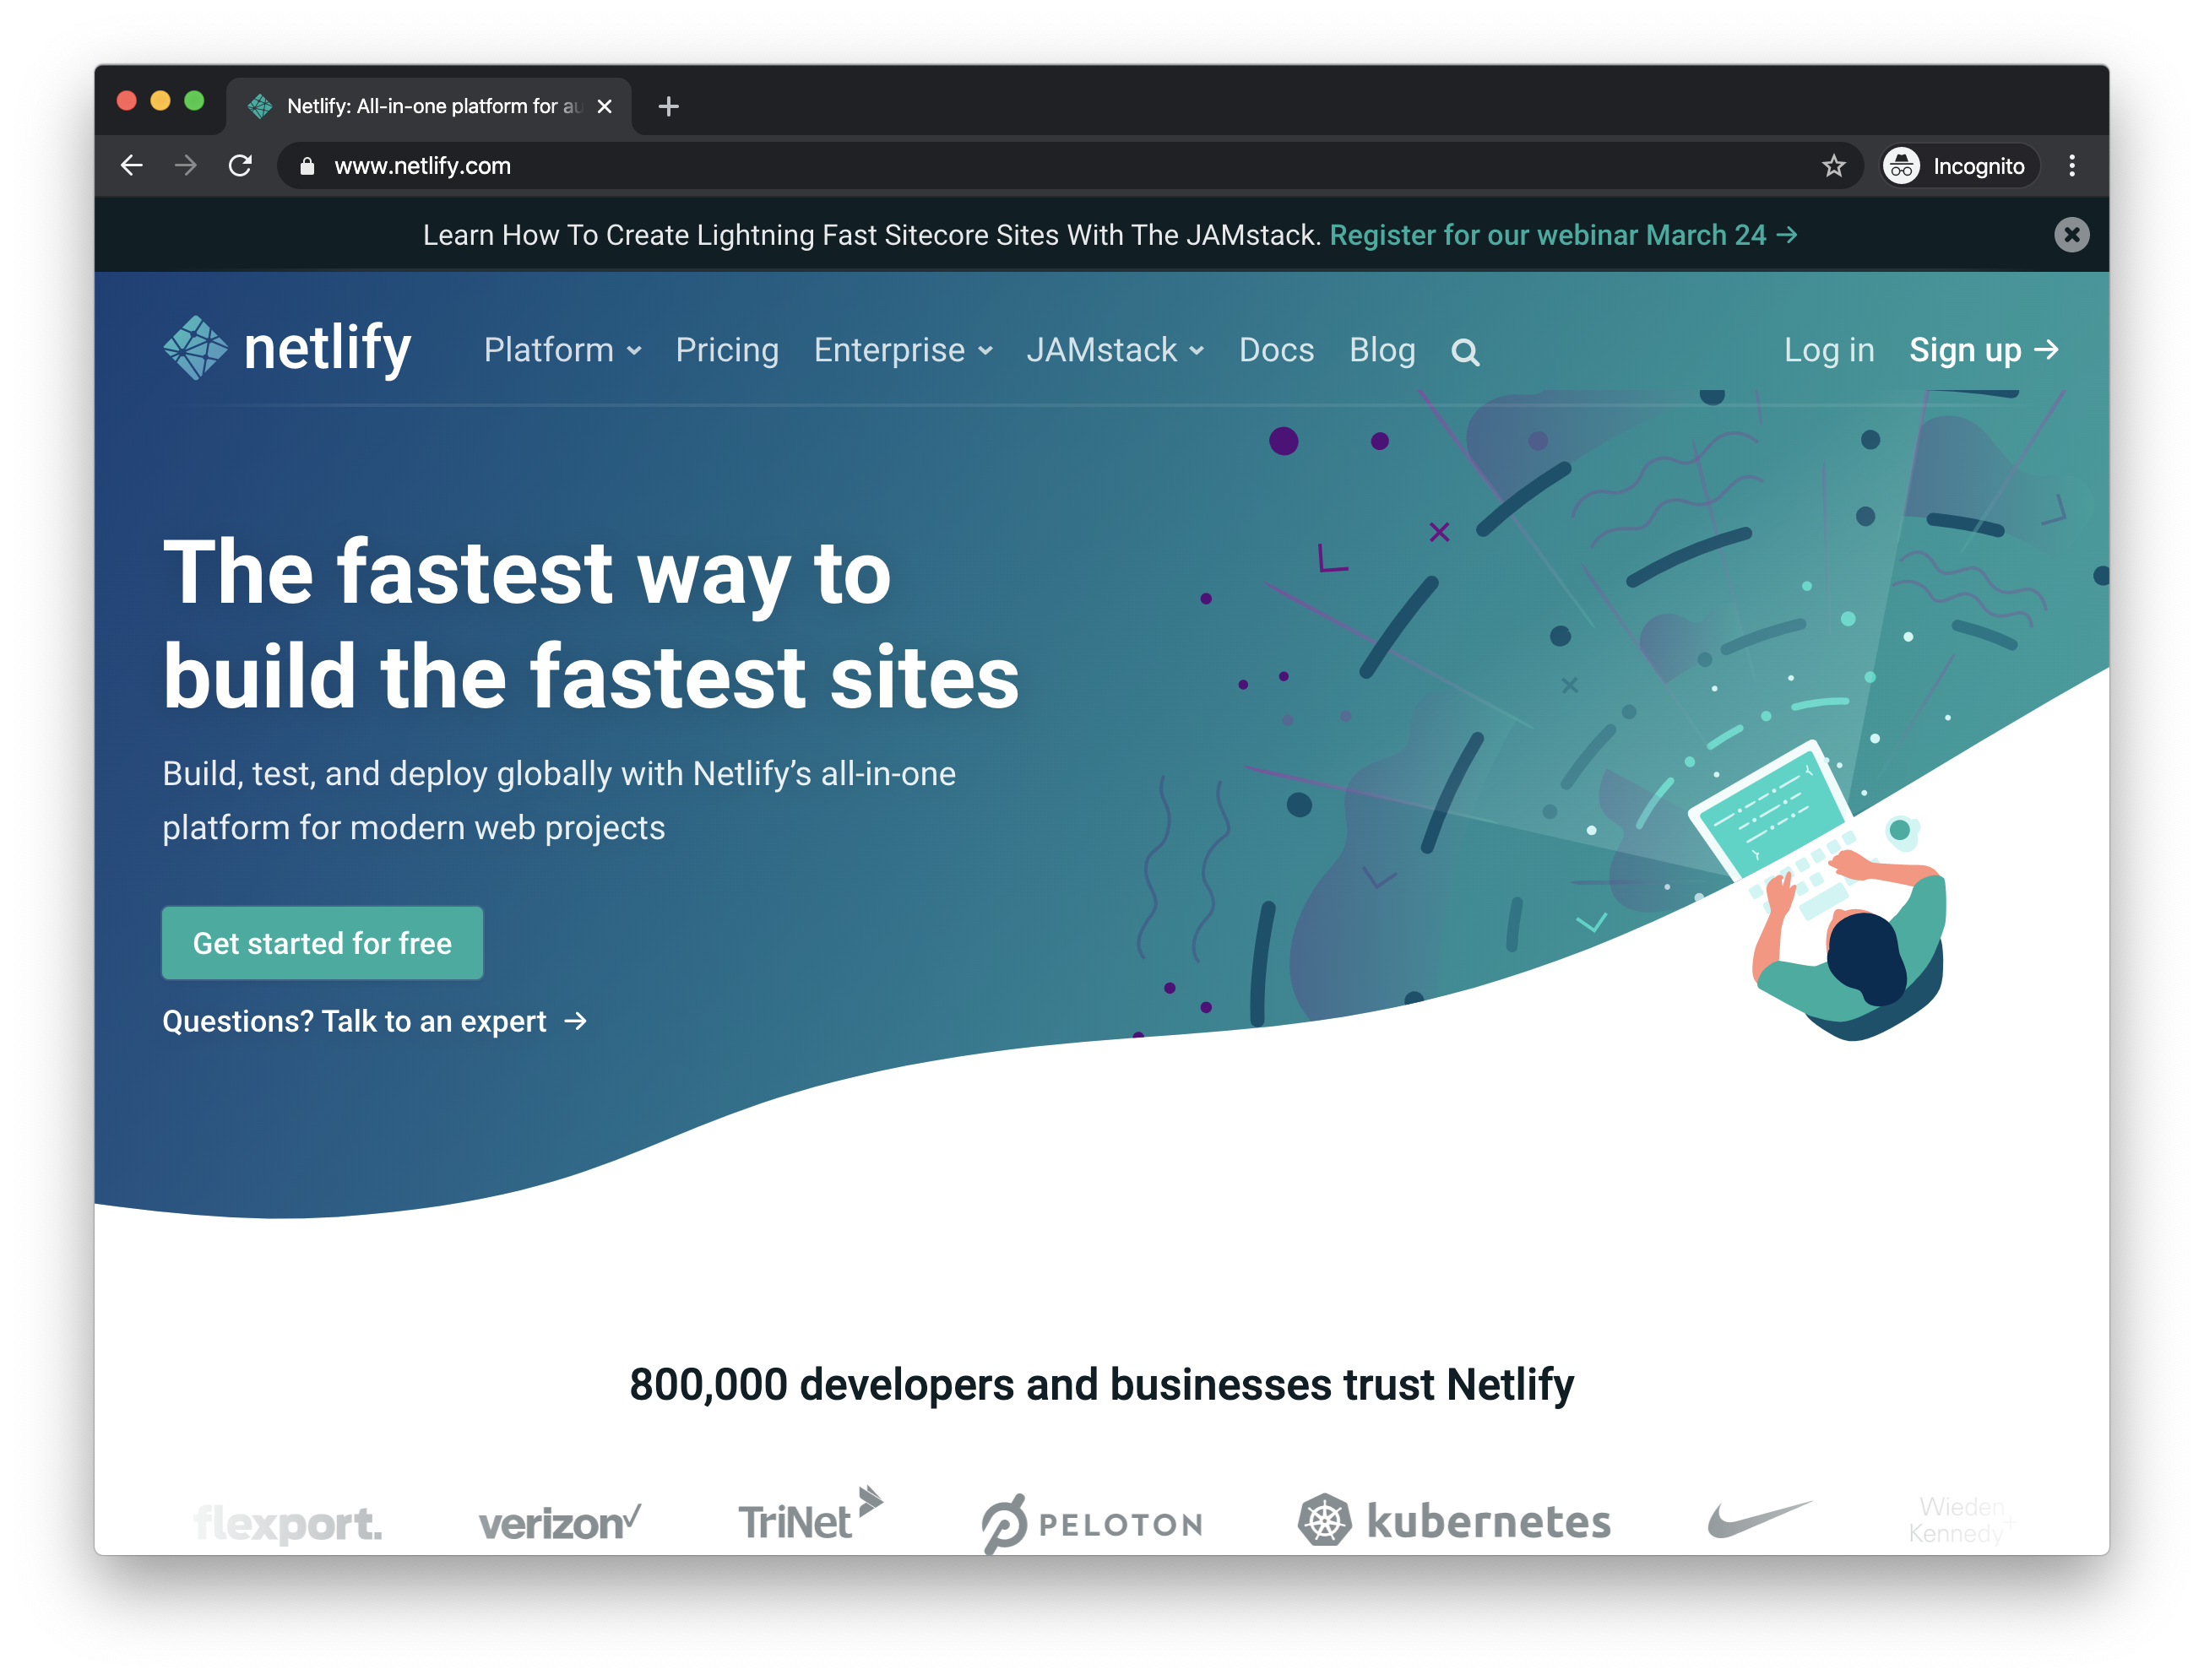 The Netlify landing page